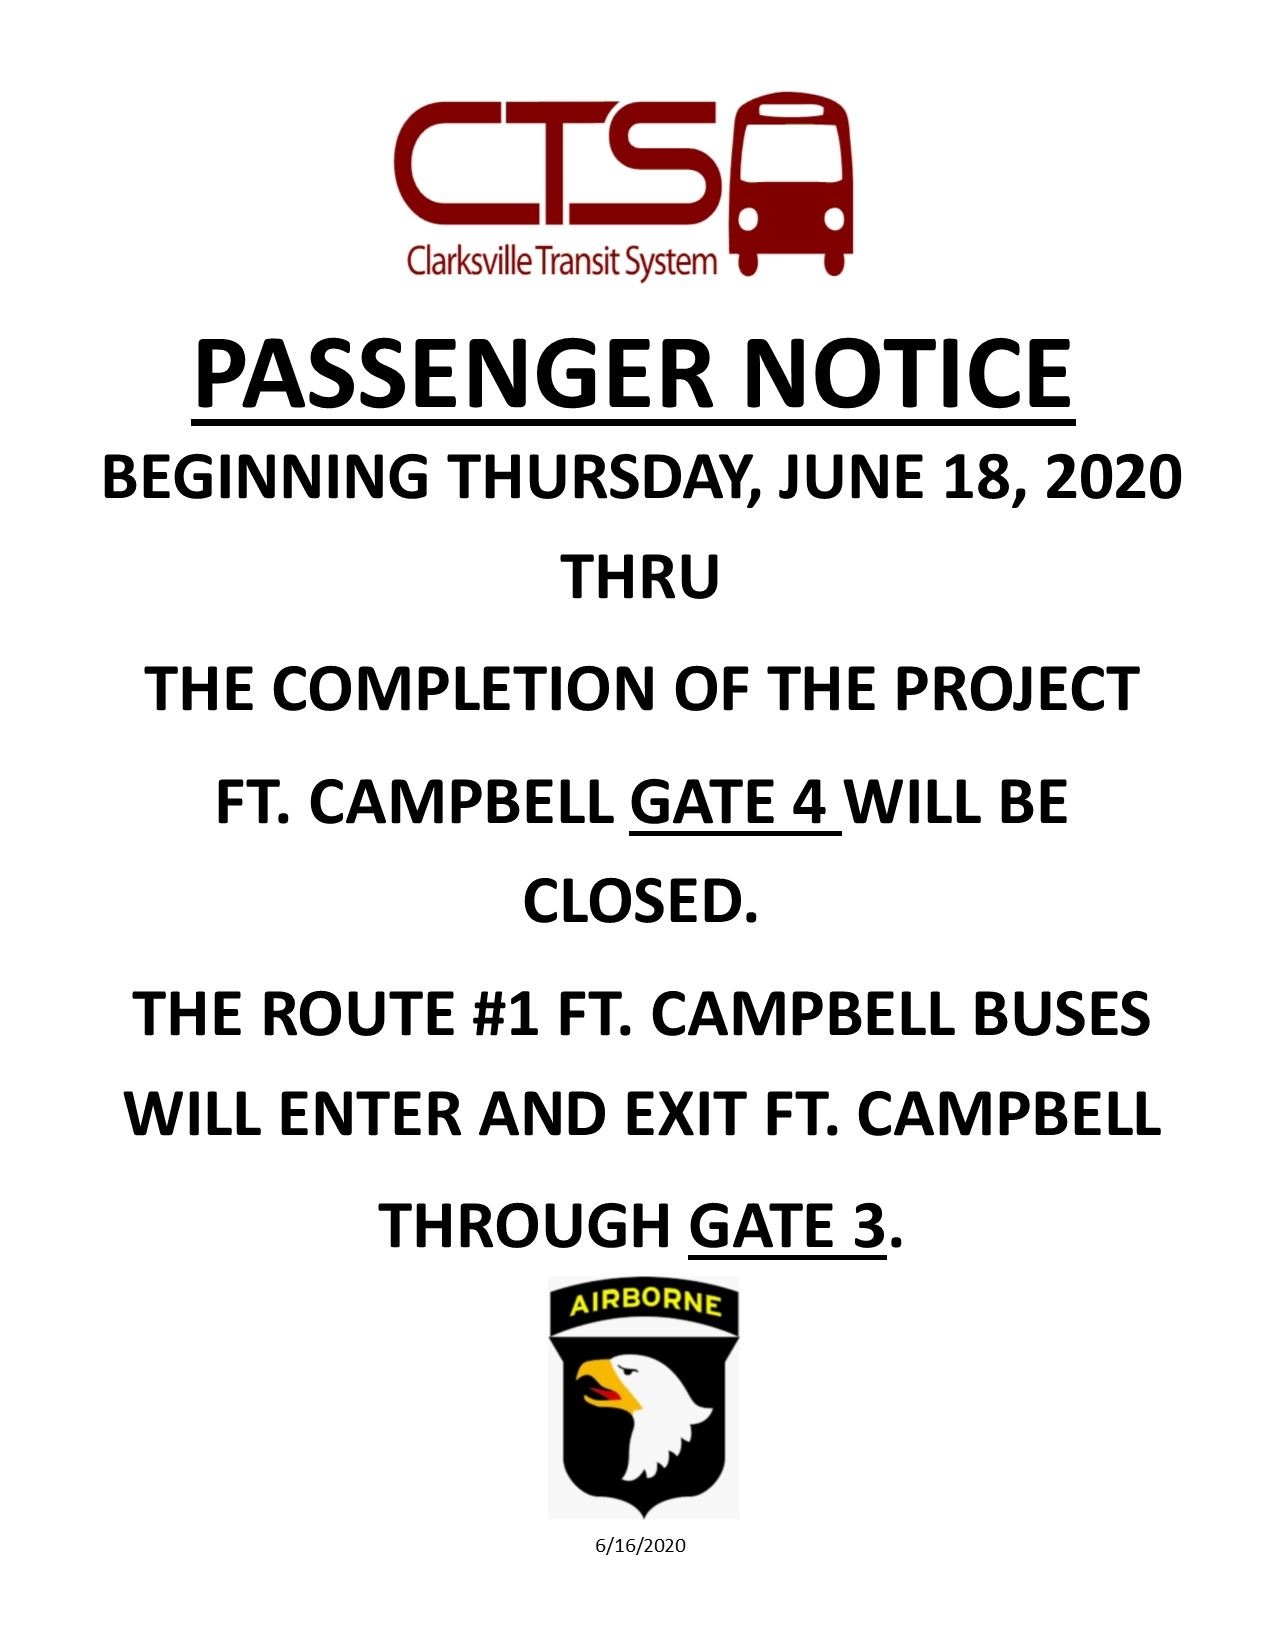 Passenger NOTICE Gate 4 closure 6-18 thru Completion of project